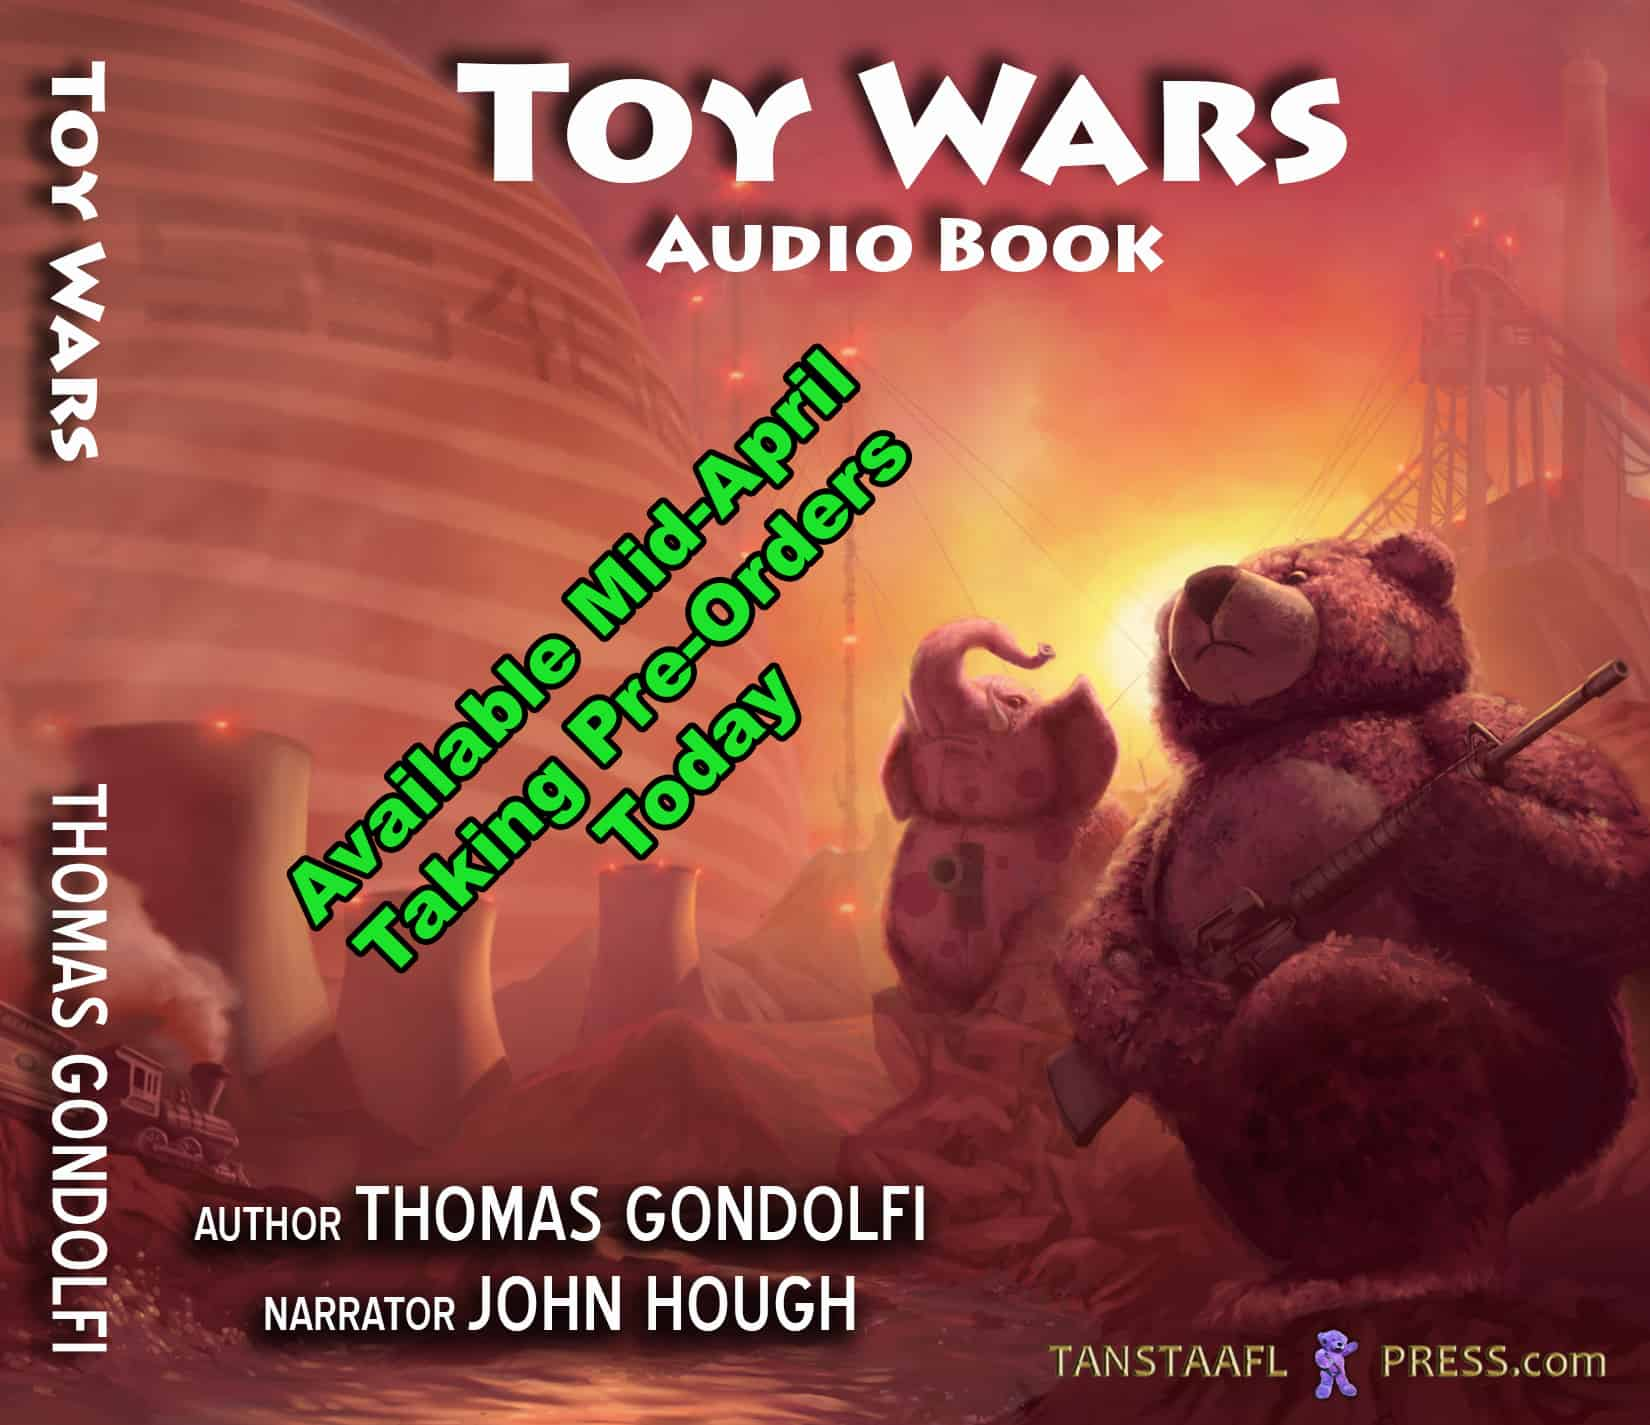 Toy Wars Audiobook Avail